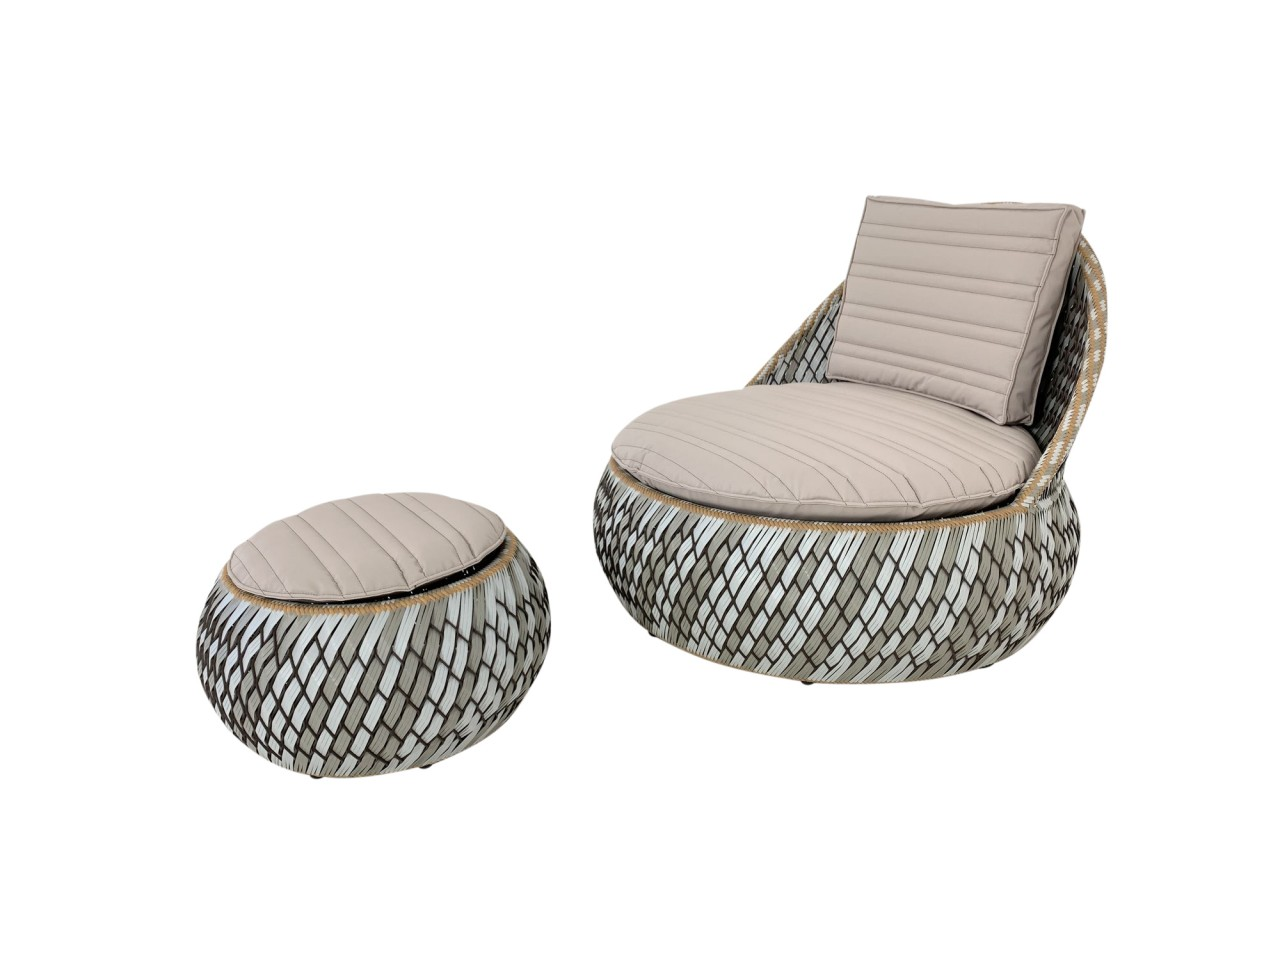 DEDON DALA LOUNGE CHAIR mit DALA Hocker in der Farbe stone inkl. Kissenset in noisette